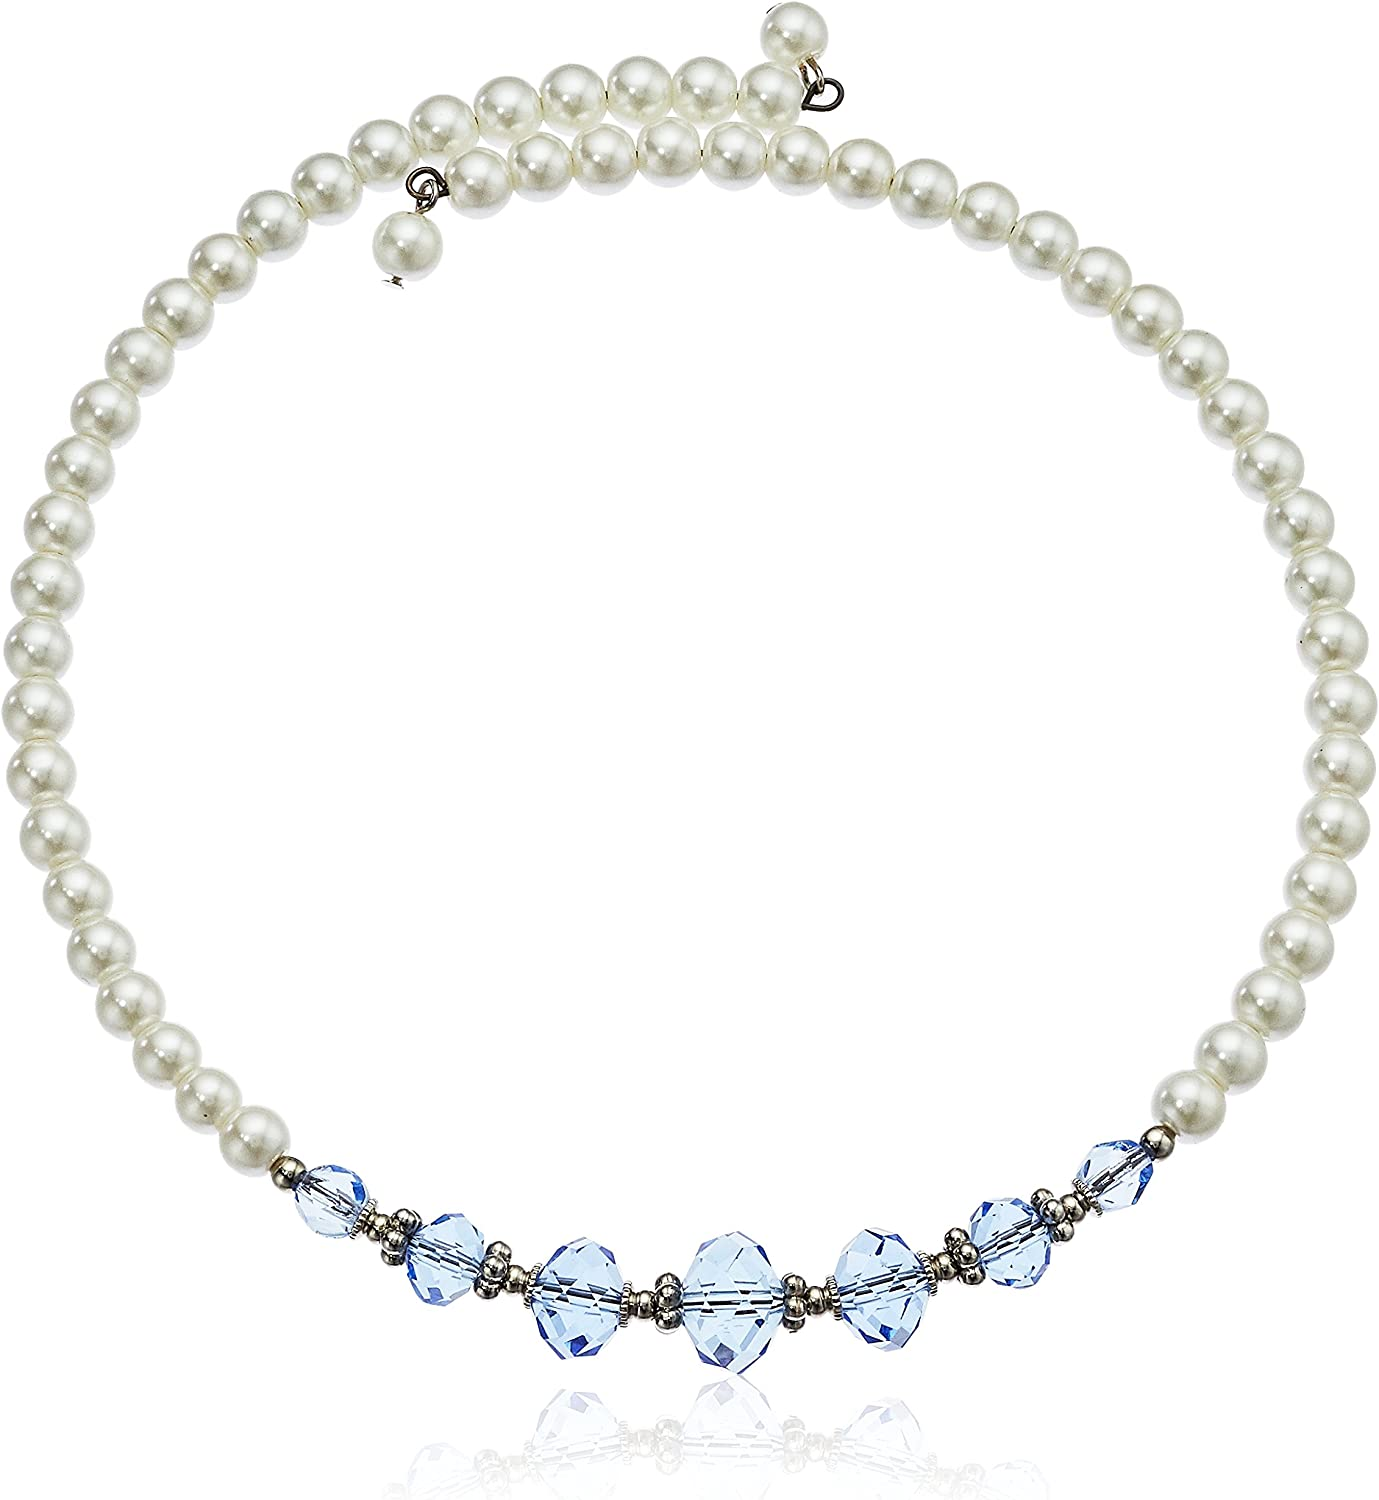 1928 Jewelry Simulated Pearl and Blue Crystal Coil Choker Necklace 15